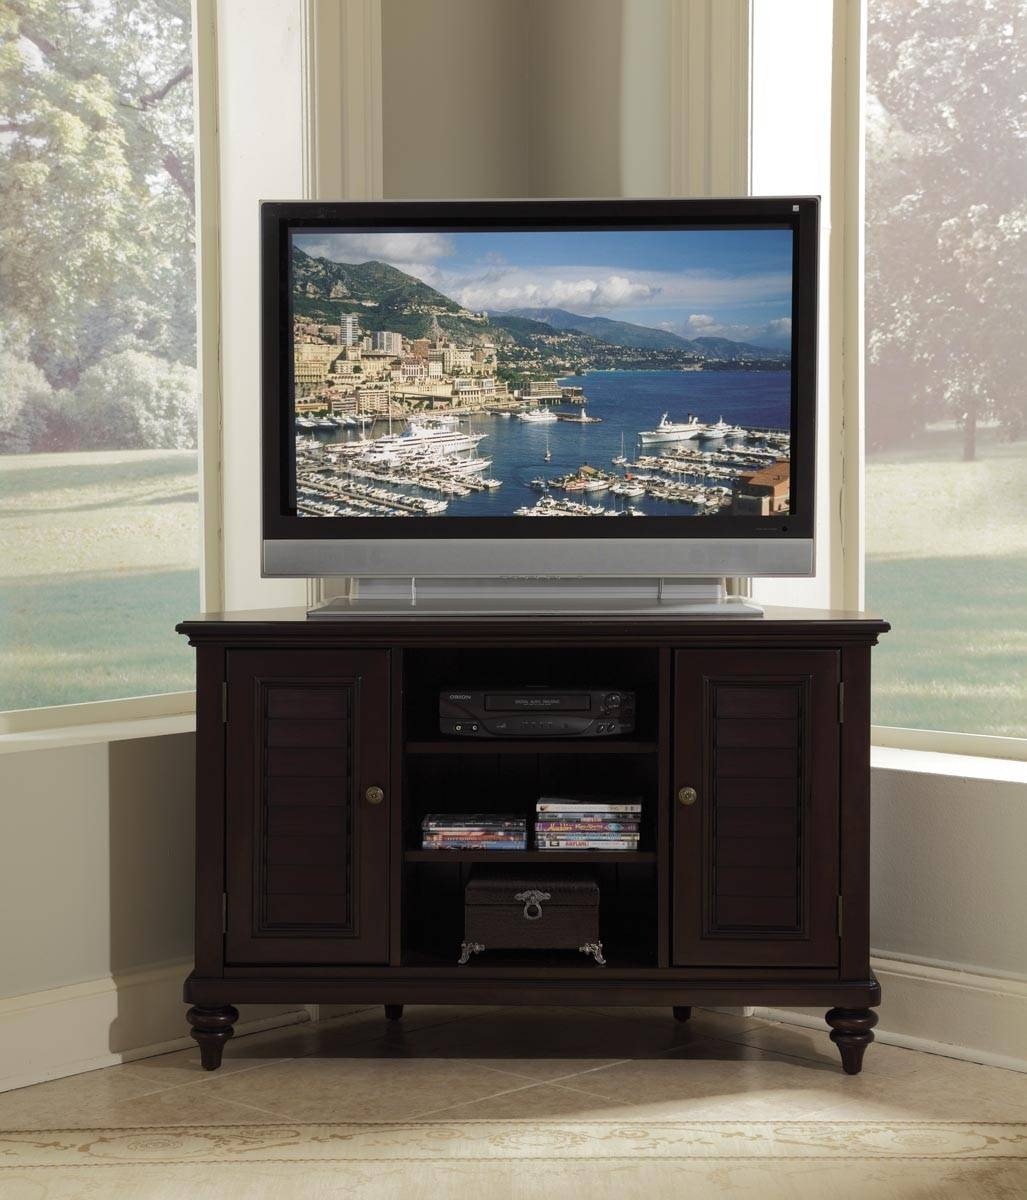 Home Styles Bermuda Corner Tv Stand 554X-07 with regard to Tv Stands for Corners (Image 8 of 15)